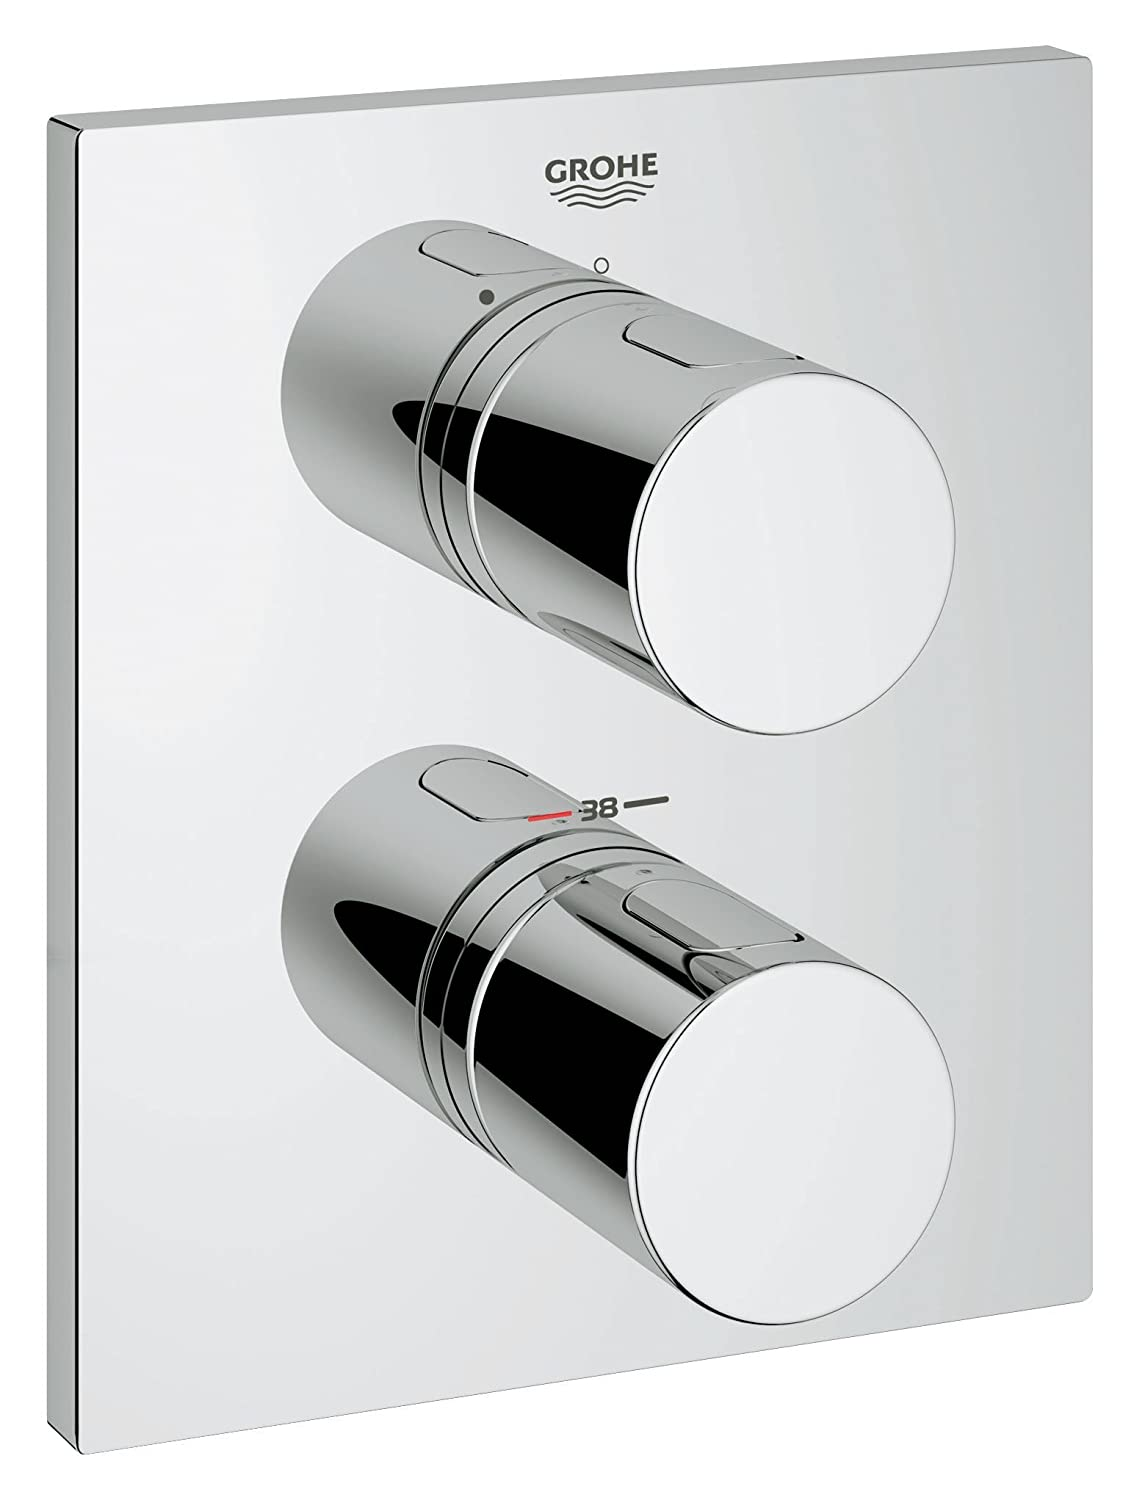 Grohe Grohtherm 3000 Cosmopolitan 19568000 Thermostatic Shower Mixer ...